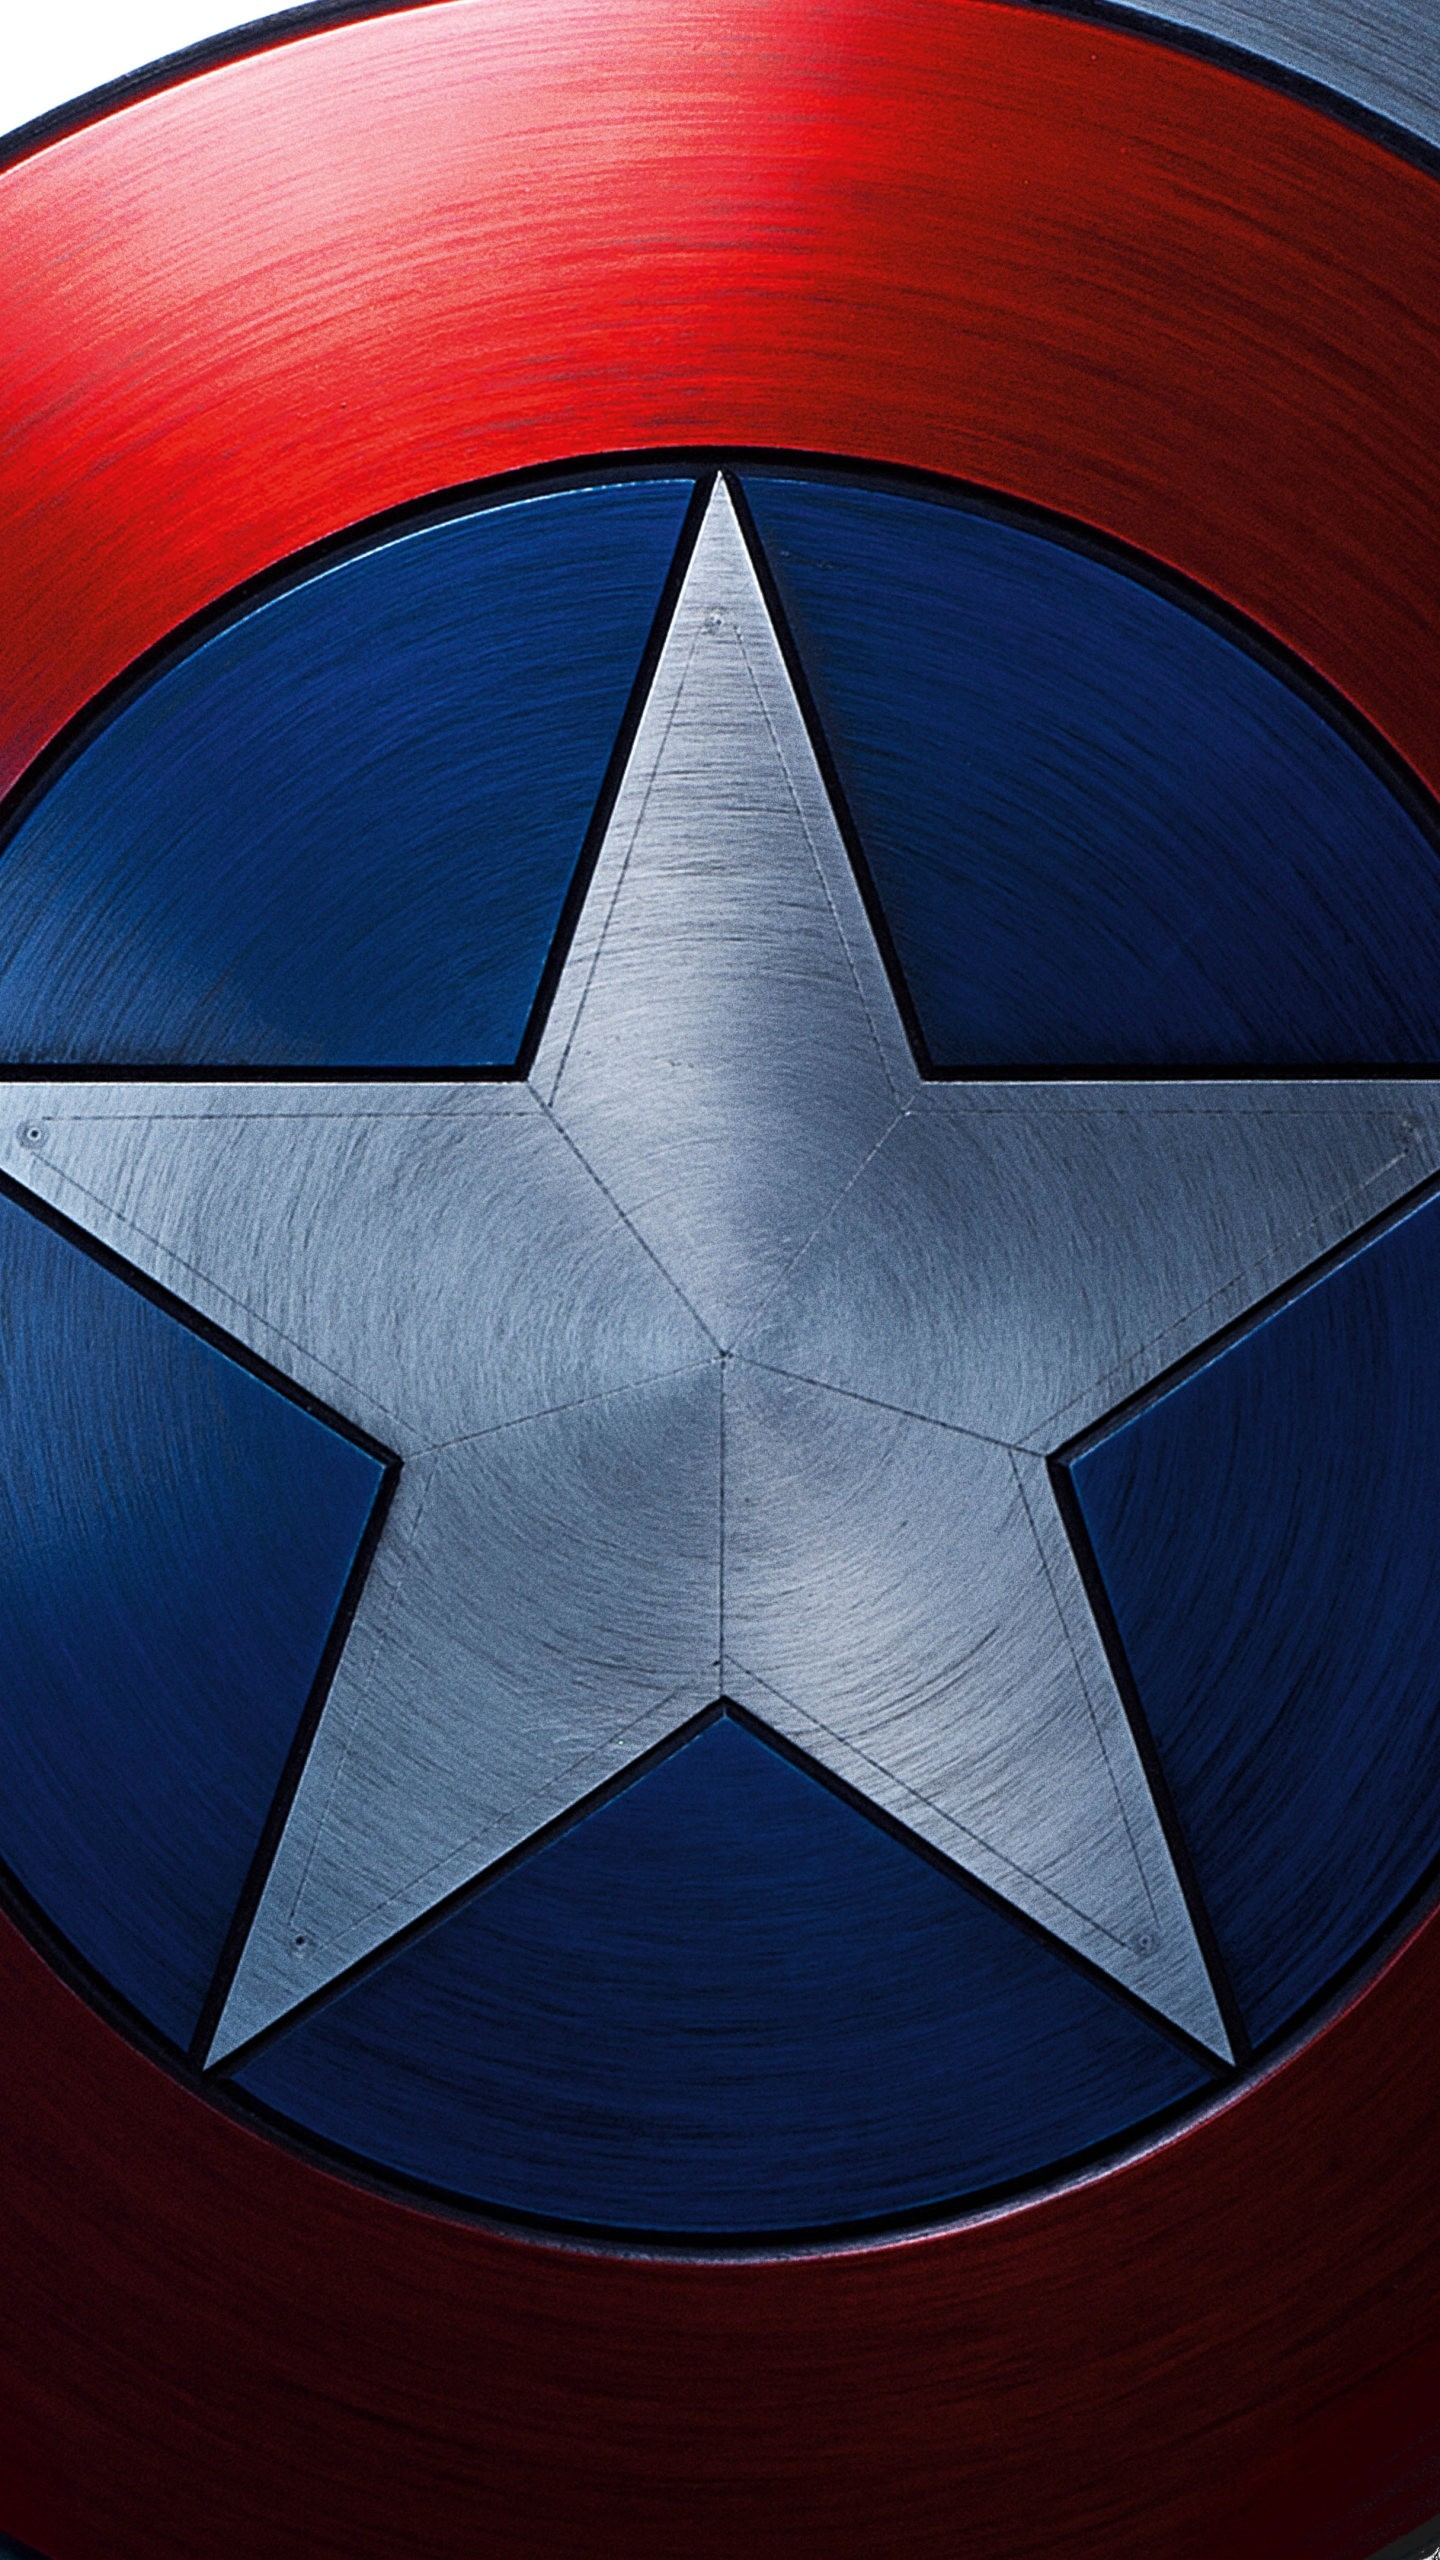 Captain America Civil War Hd Wallpapers For Galaxy S6 S6 Edge